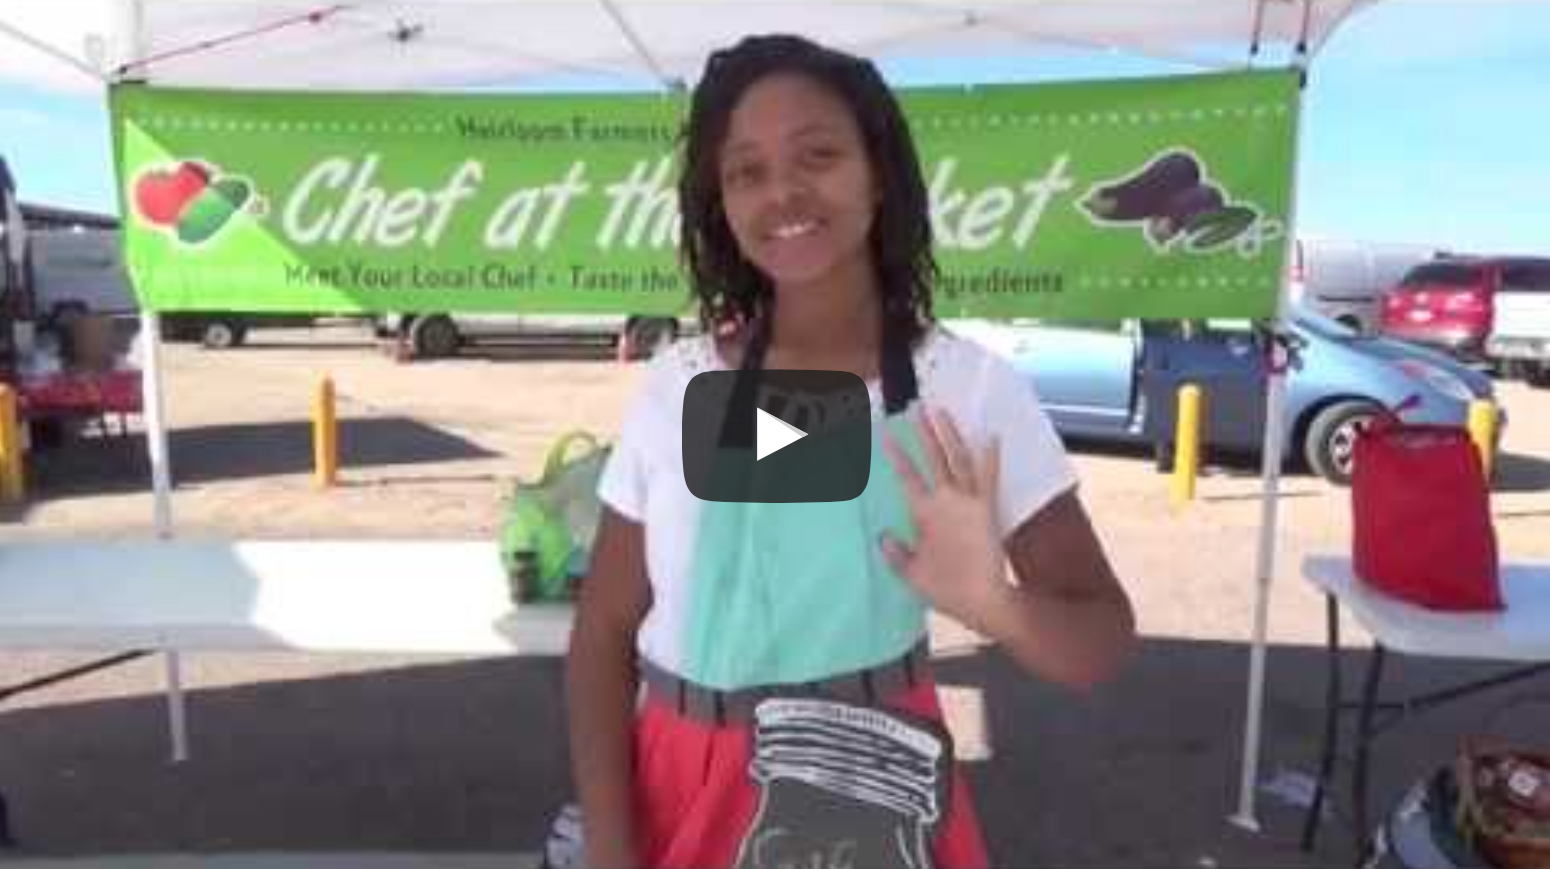 The Teen Vegan - Featured Chef At The Farmers Market | VeganFlix